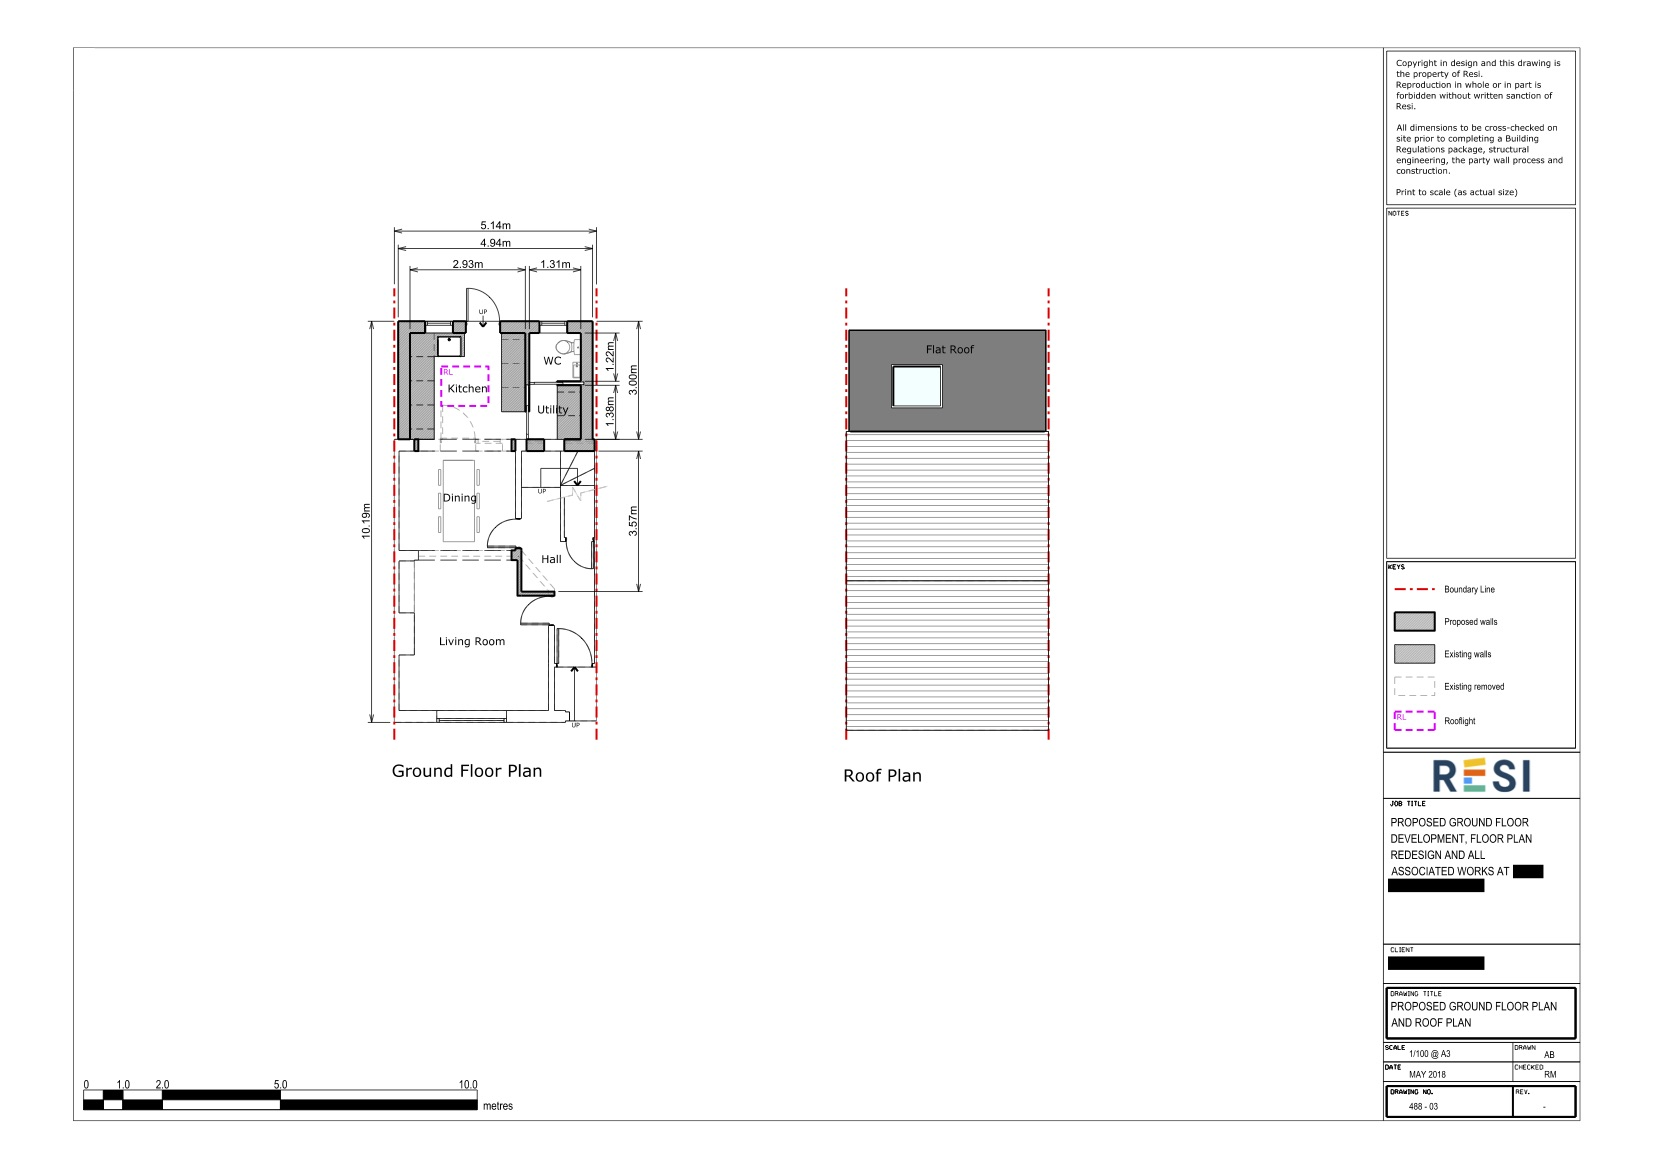 Architectural drawings set   ground floor and roof plan